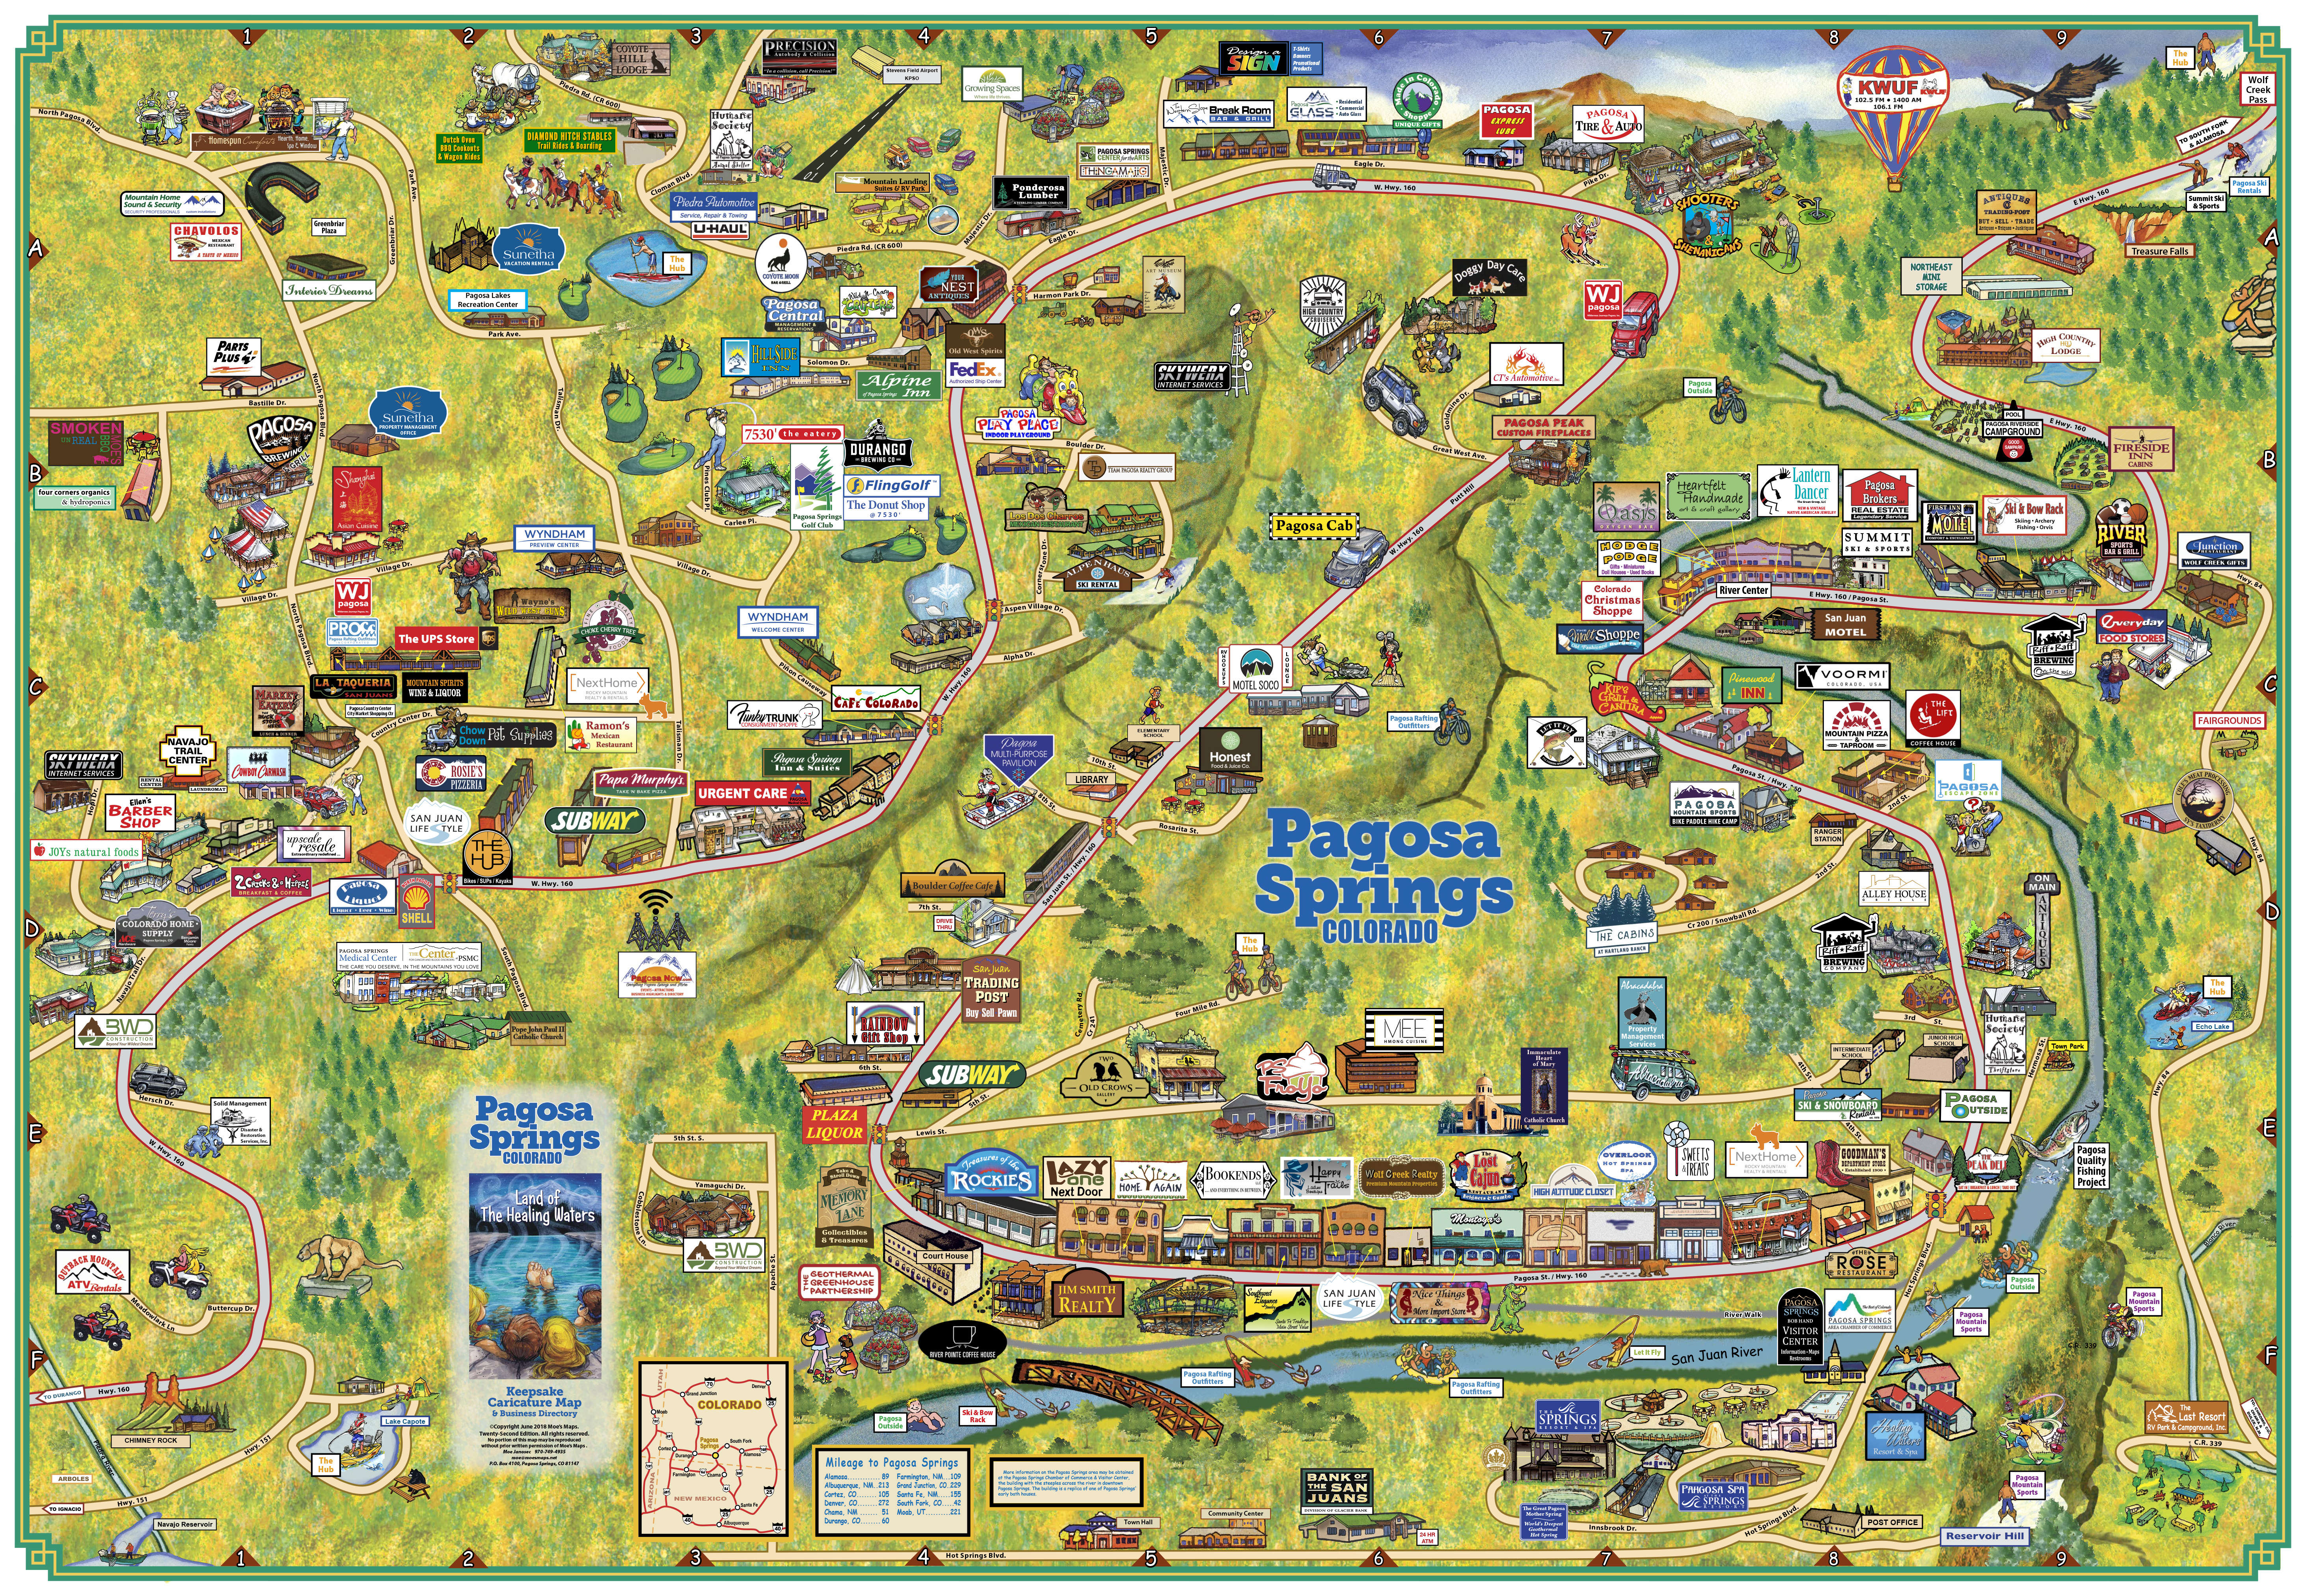 Pagosa Springs Caricature Map - Pagosa Springs Chamber